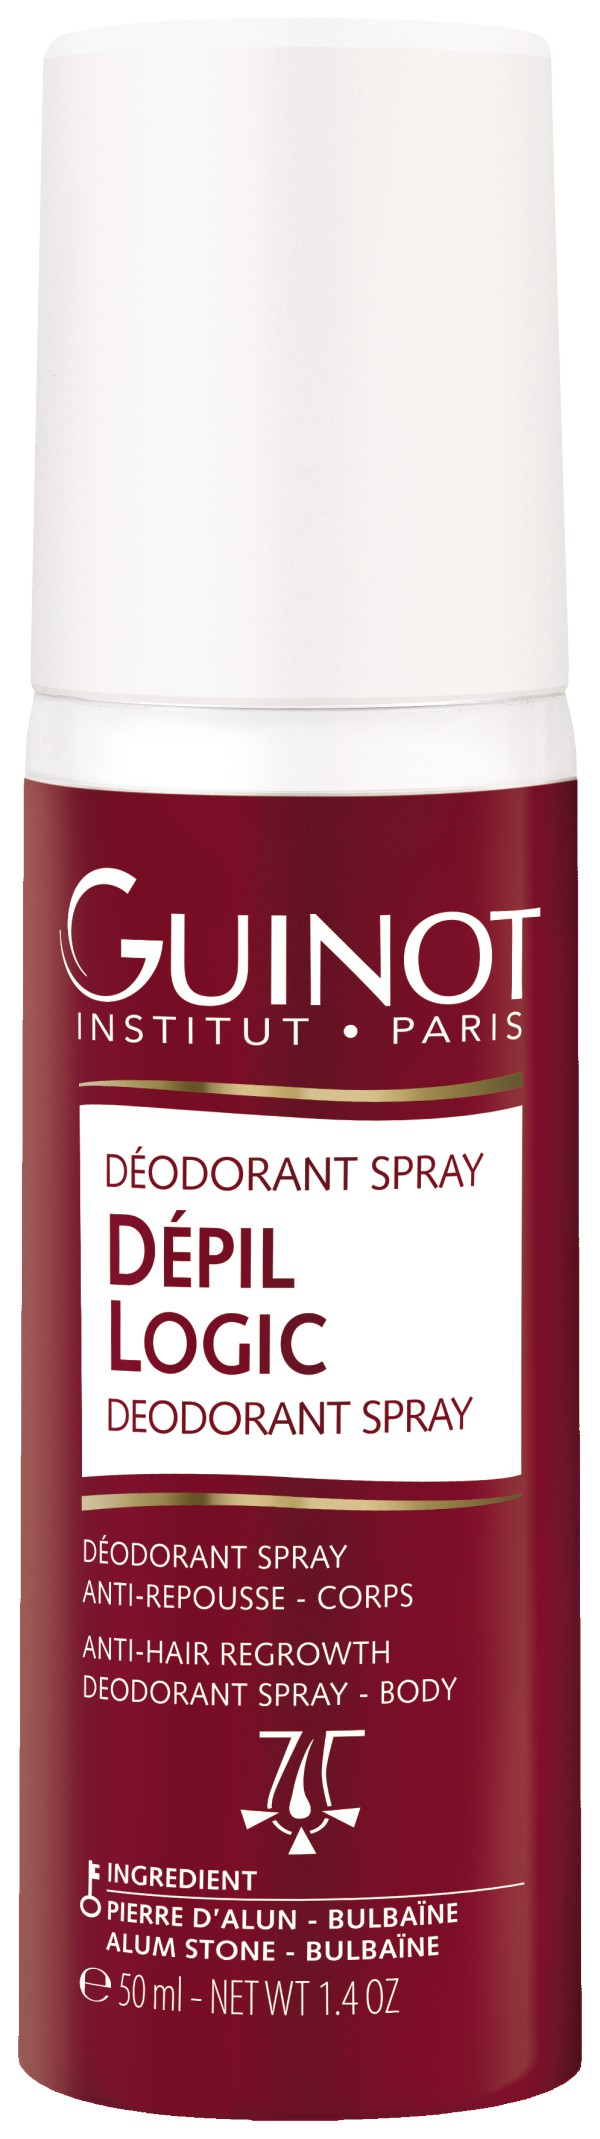 GuinotDEPIL_LOGIC_DEO_SPRAY